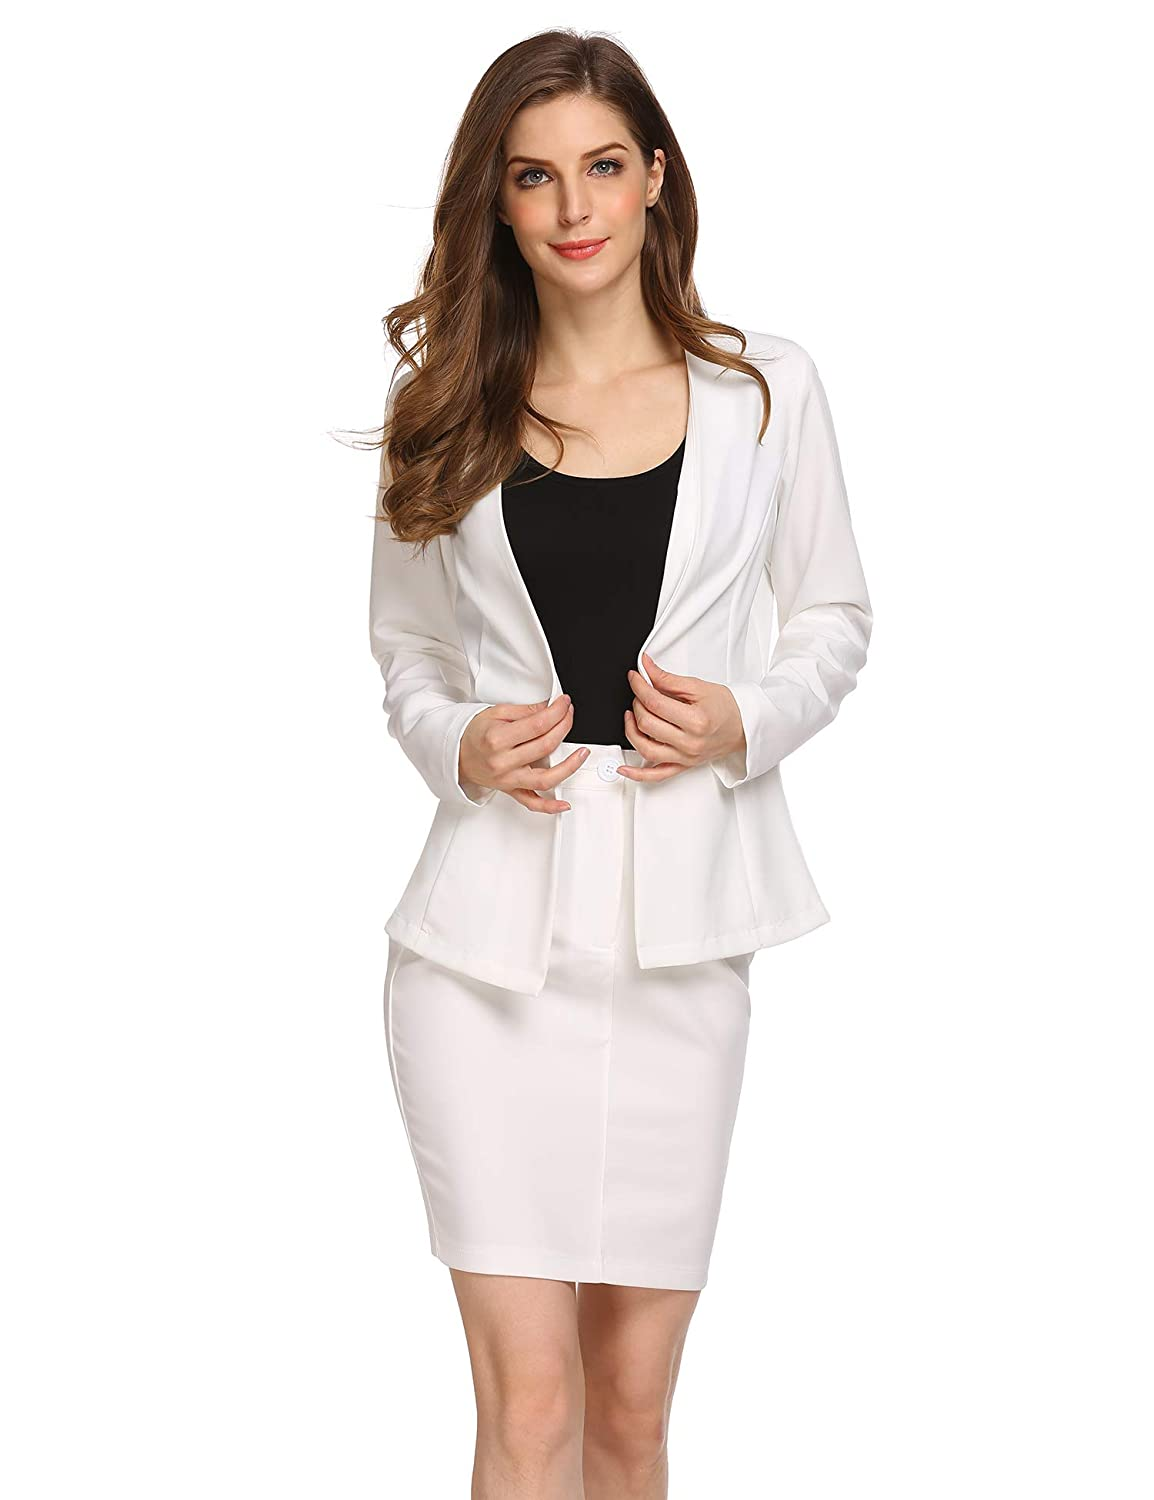 6d4331356625 BURLADY Women s Formal Office Business Work Jacket Skirt Suit Set SWH019892